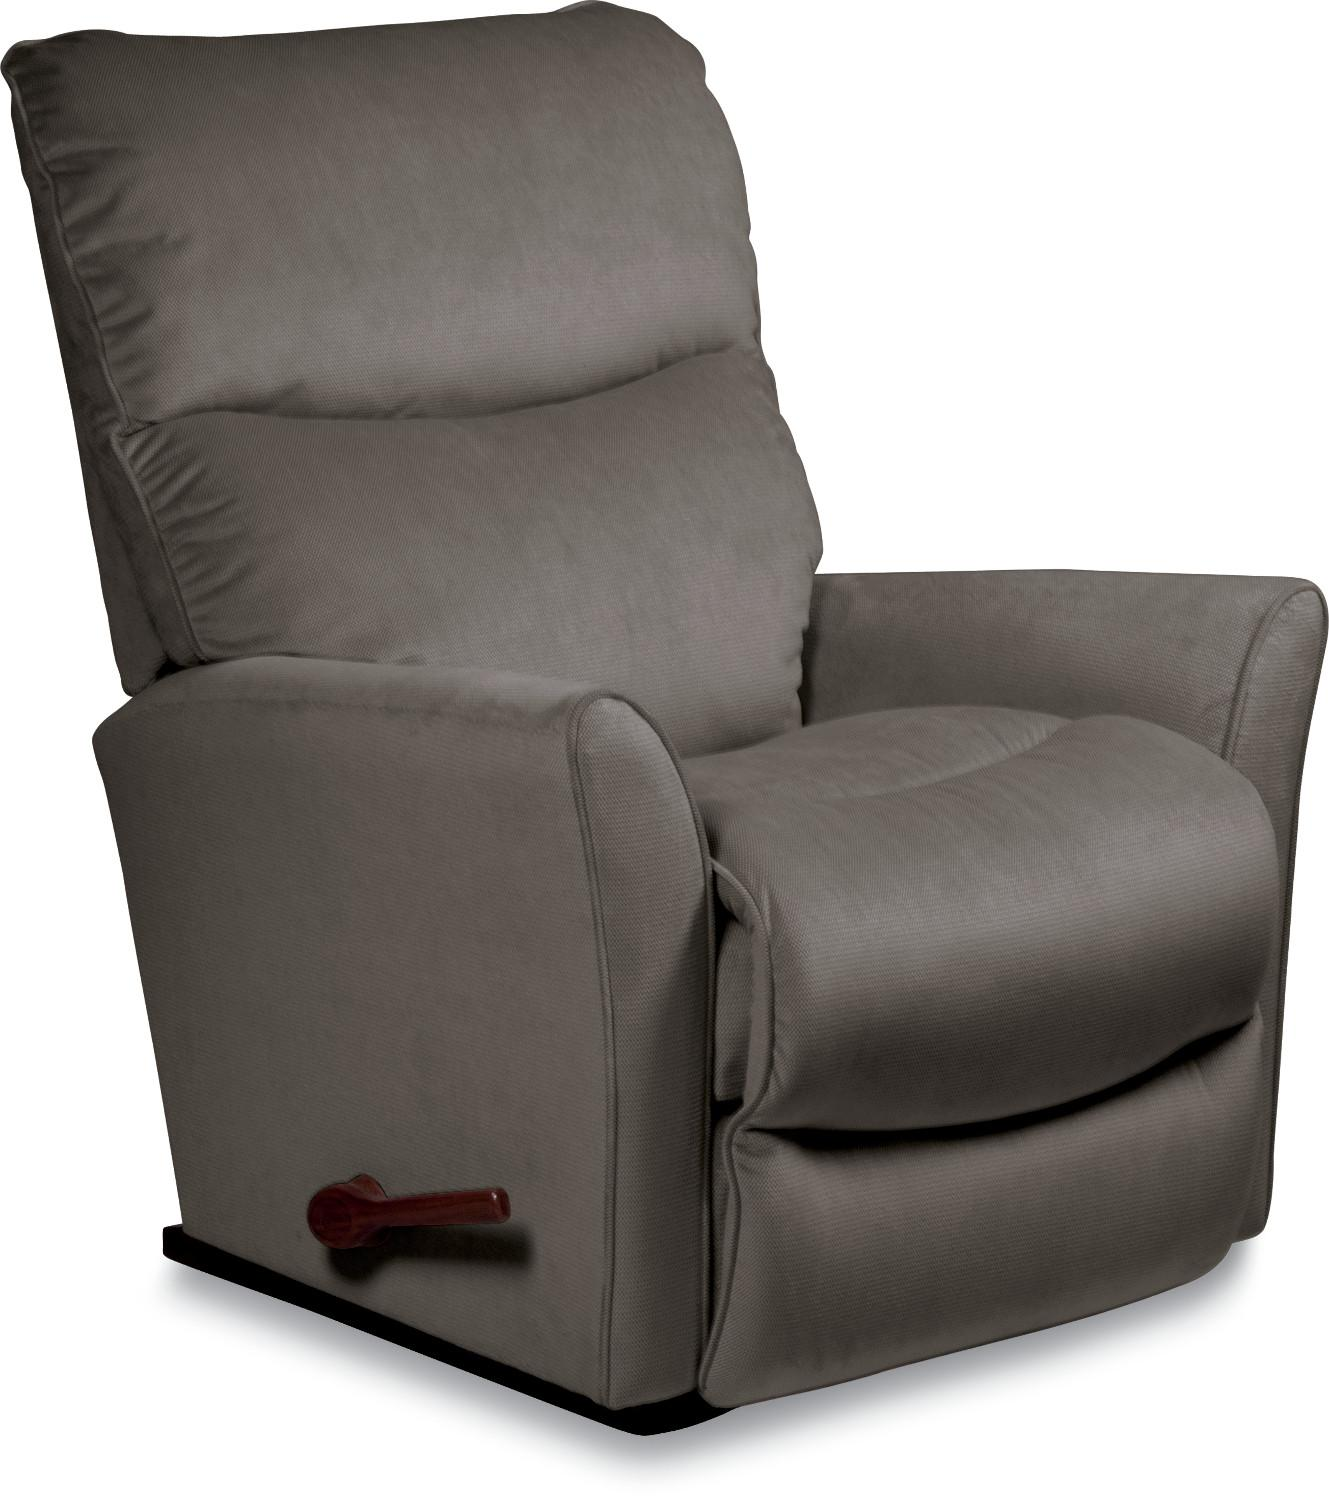 of living in broken recliner loveseat romantic double color white seat small made love for microfiber rocker room